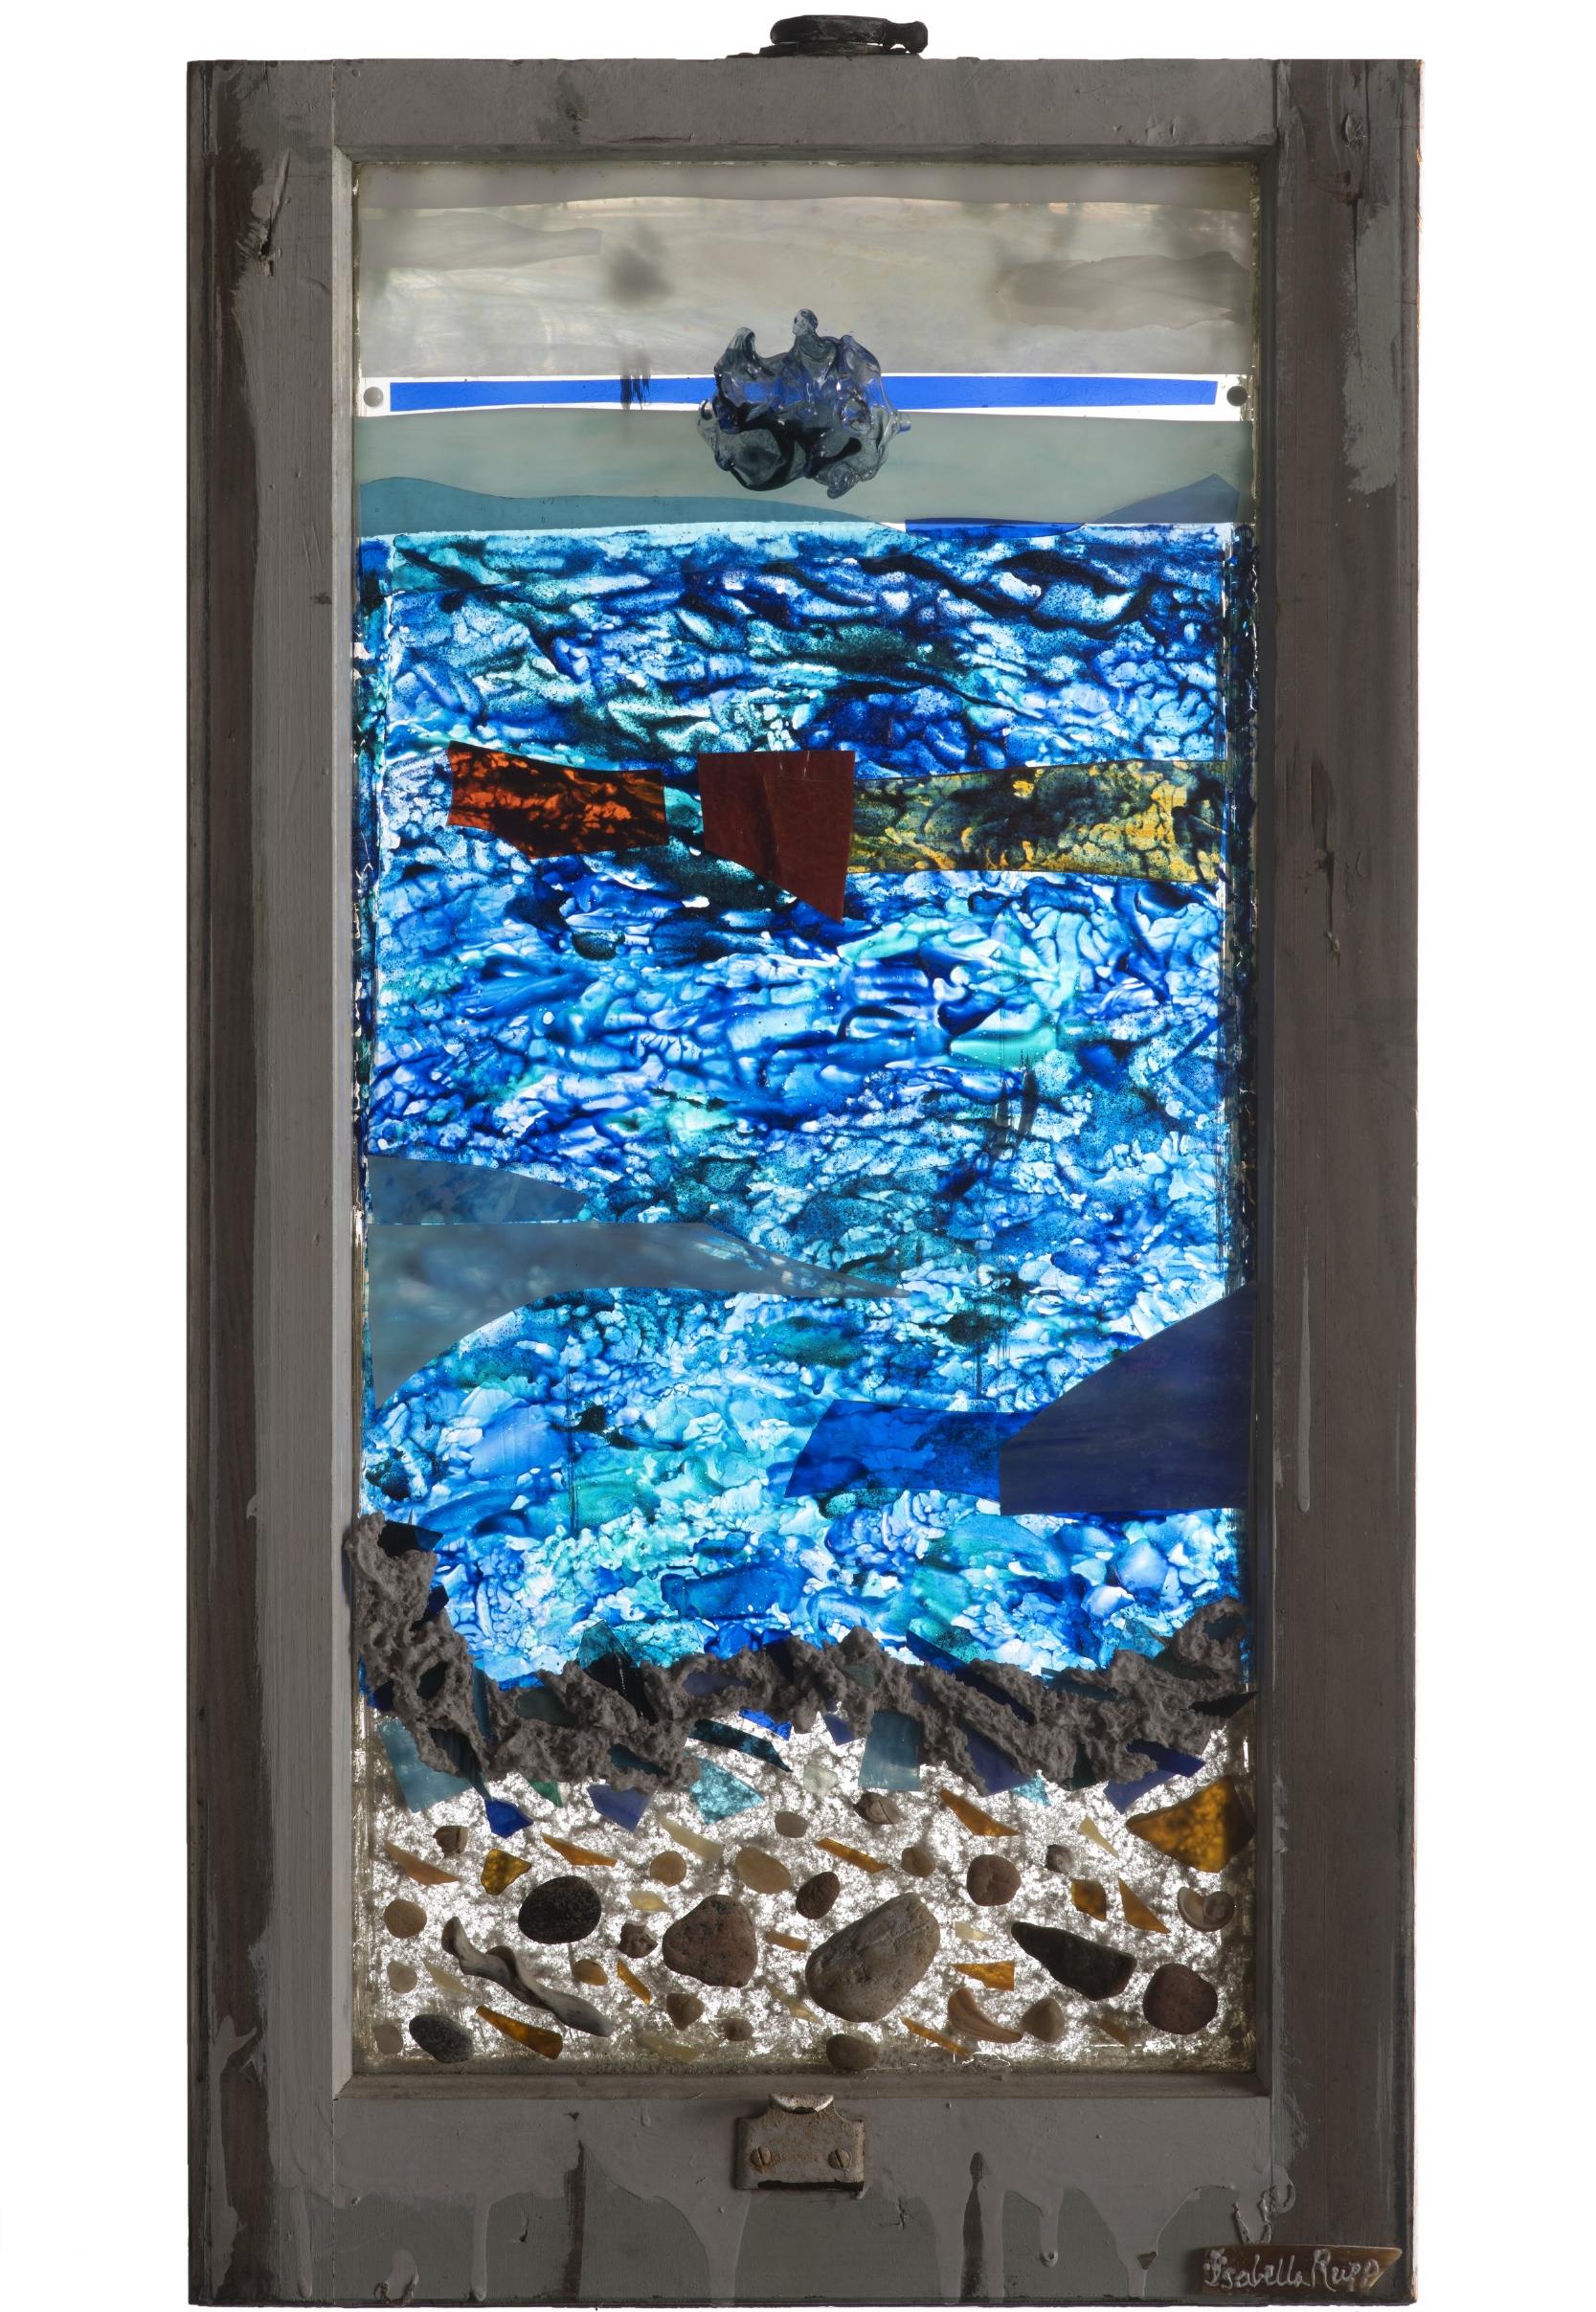 Rock-n-Roll, 2009. Flameworked glass, acrylic paint, clay, 29 x 16 in.   Window from Chelsea, New York, NY